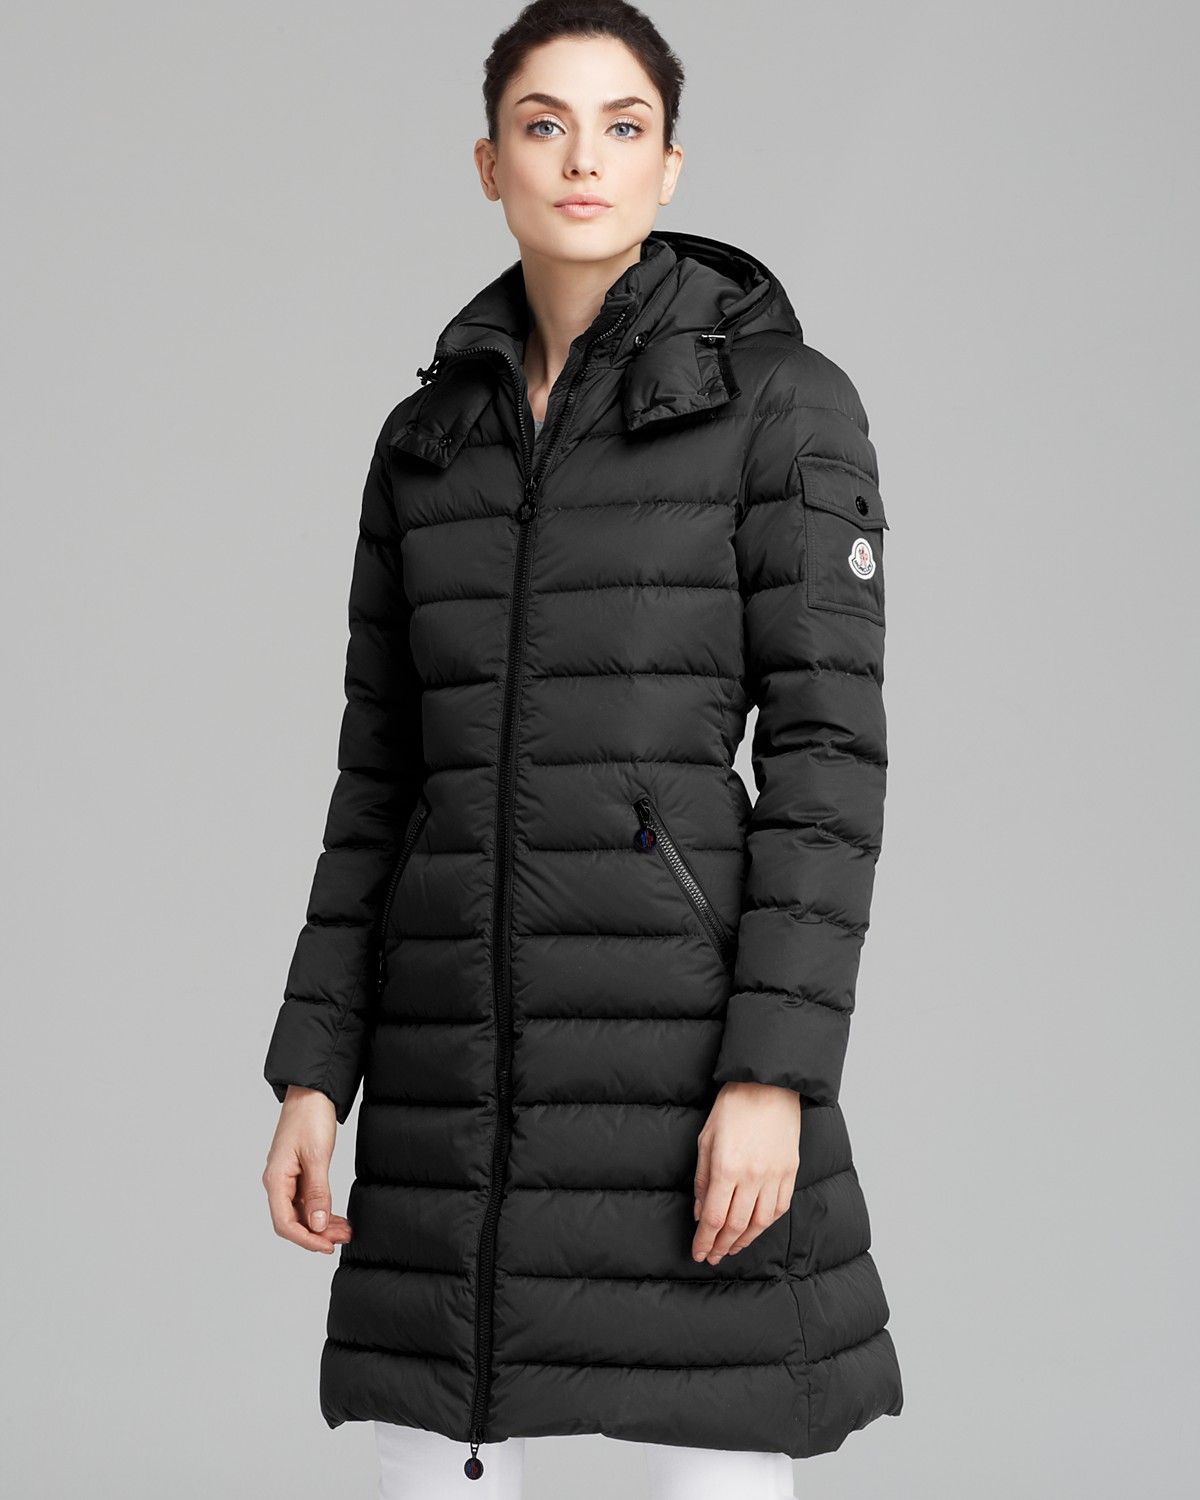 Moncler Coat Mokamat Midlength Down Leather jackets